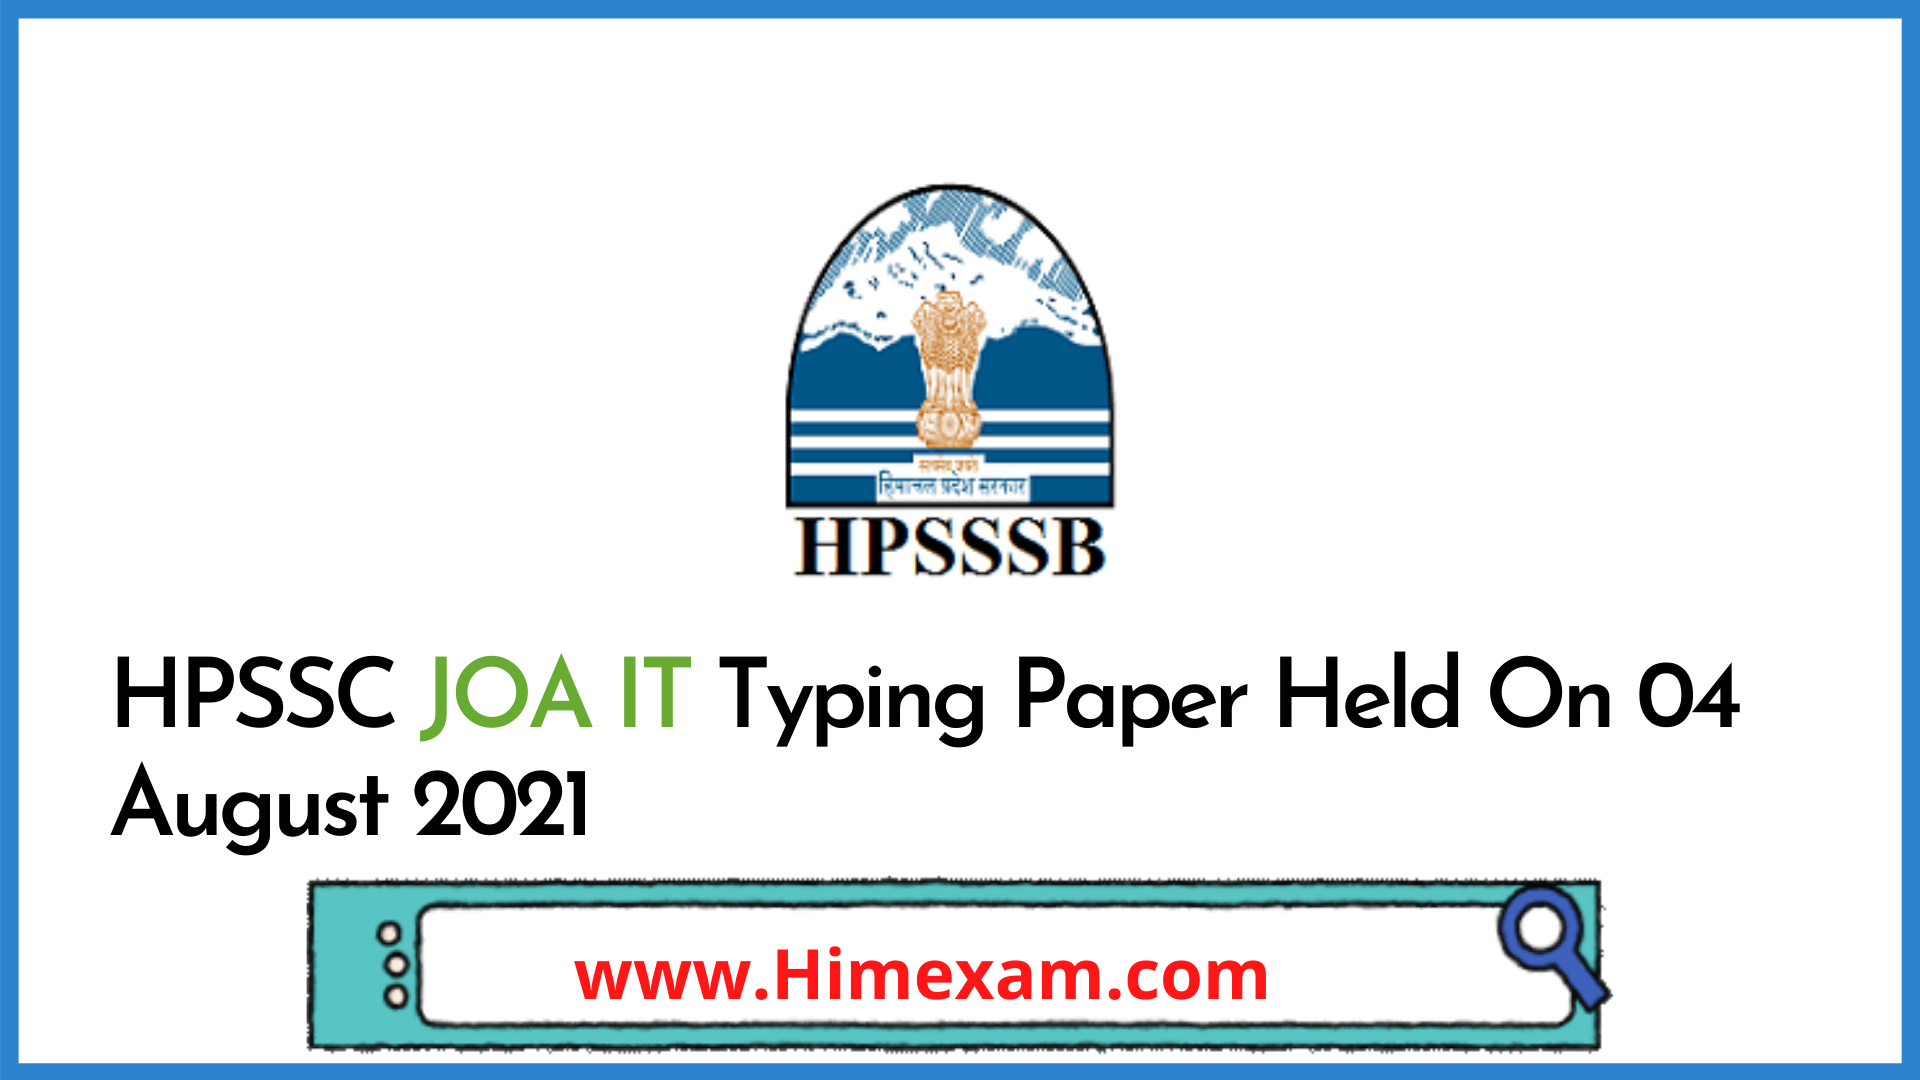 HPSSC JOA IT Typing Paper Held On 04 August 2021